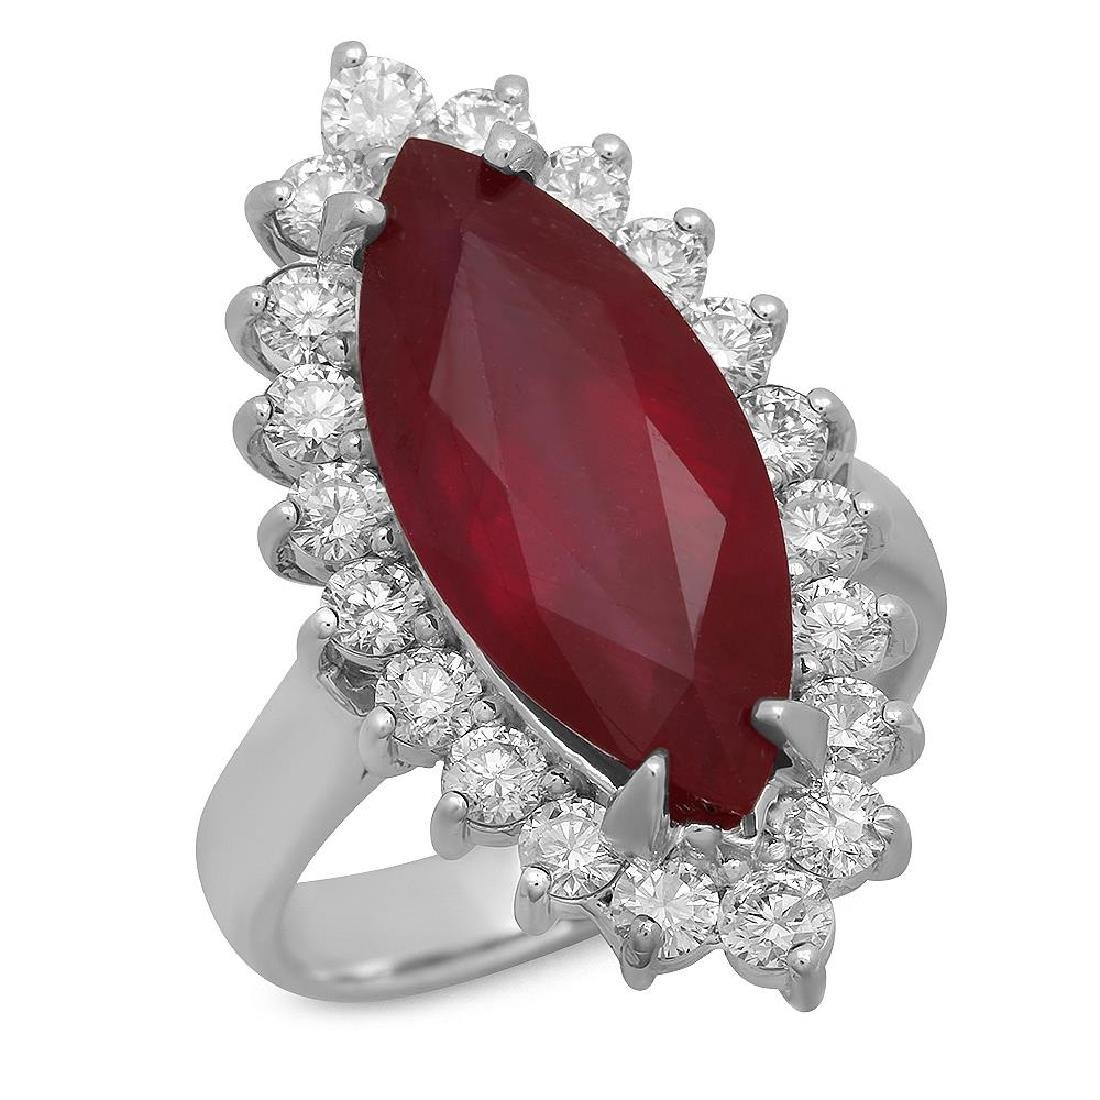 14K Gold 8.09ct Ruby 1.45ct Diamond Ring